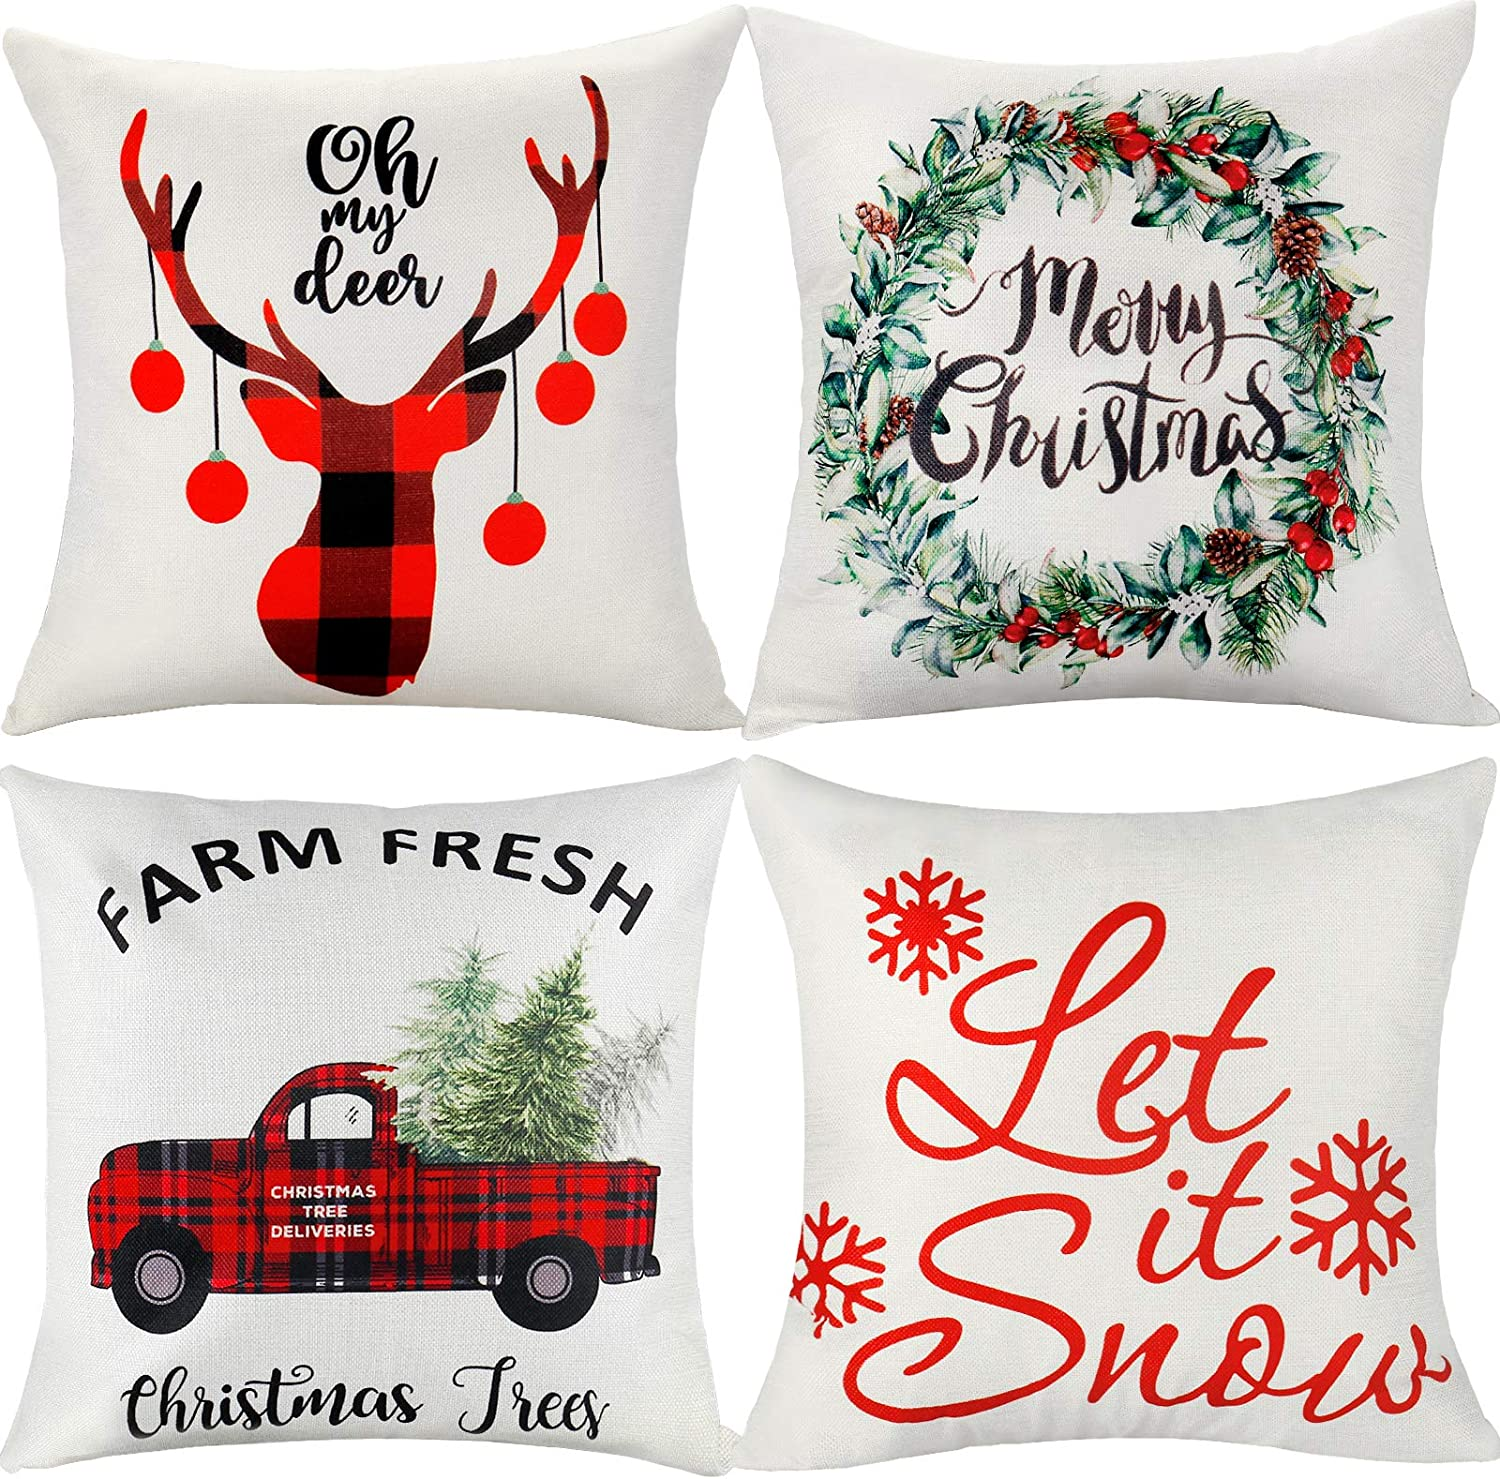 ifremaix Christmas Decorative Pillow Cover Perfect Farmhouse Style (Beige 4-Piece) Made of Polyester Linen 18 x 18 inches, 45 x 45 cm Home Decorative Black Check Christmas Element Pillowcase